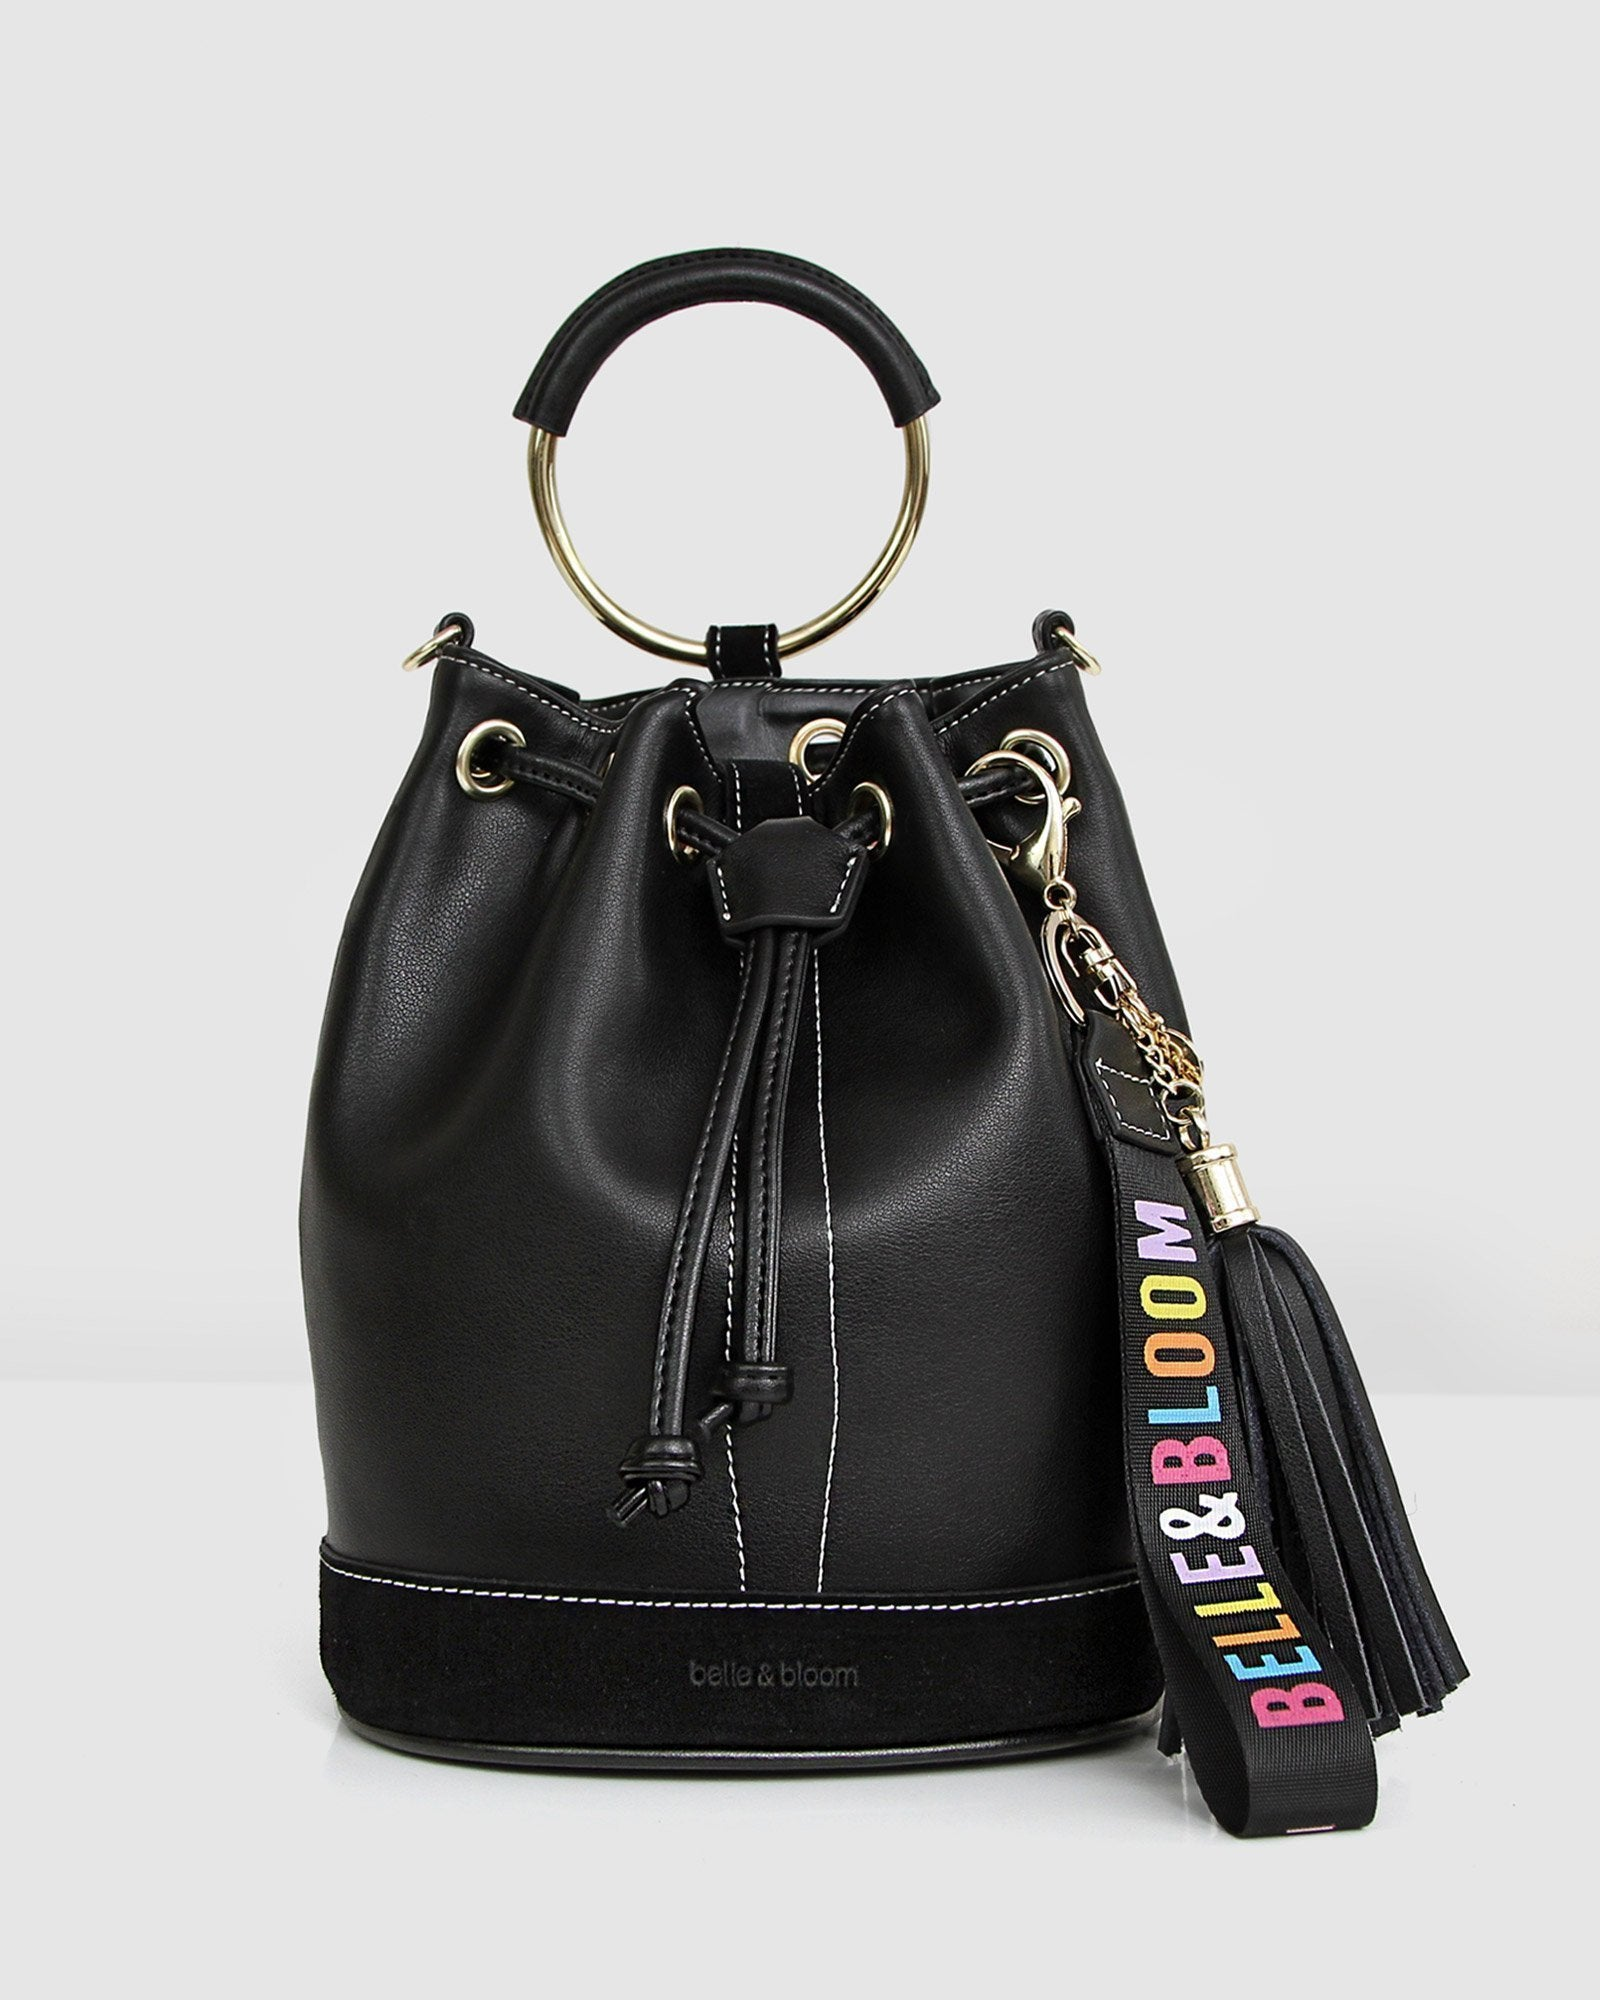 Rainbow_bucket_bag_black_leather_golden_ring_front.jpg